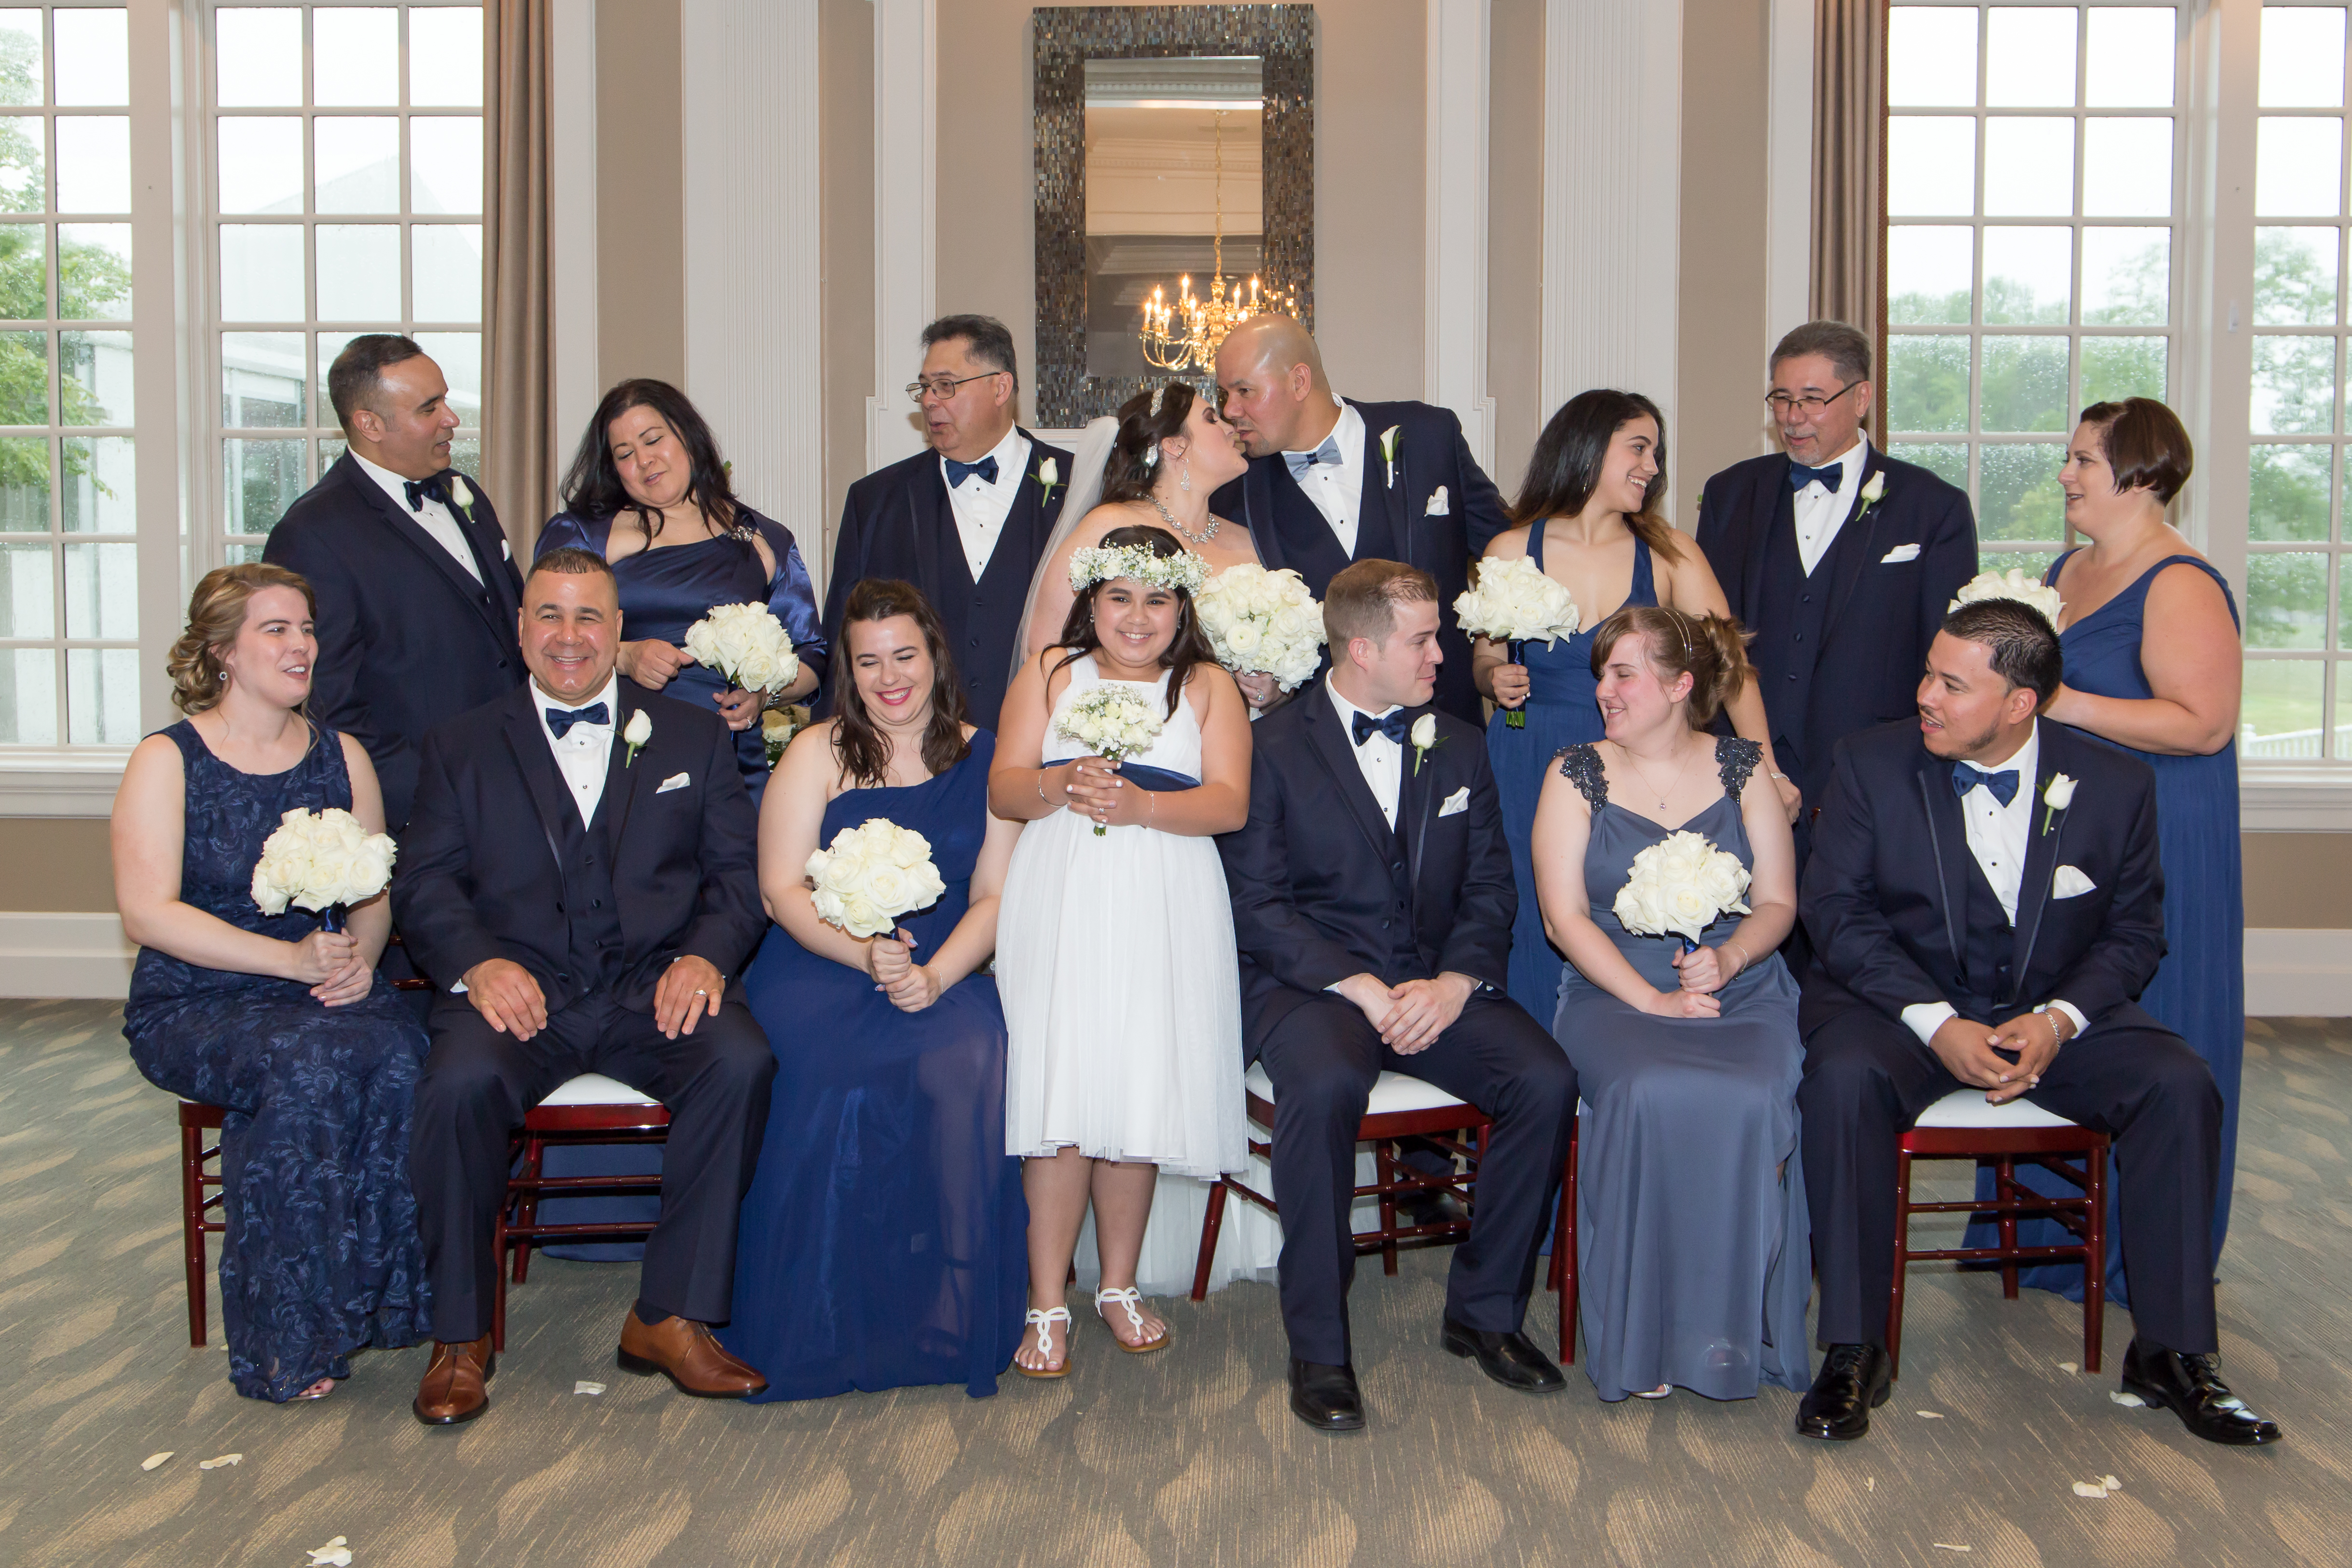 Elizabeth_Dennis Sierra Wedding April 22 2017-249